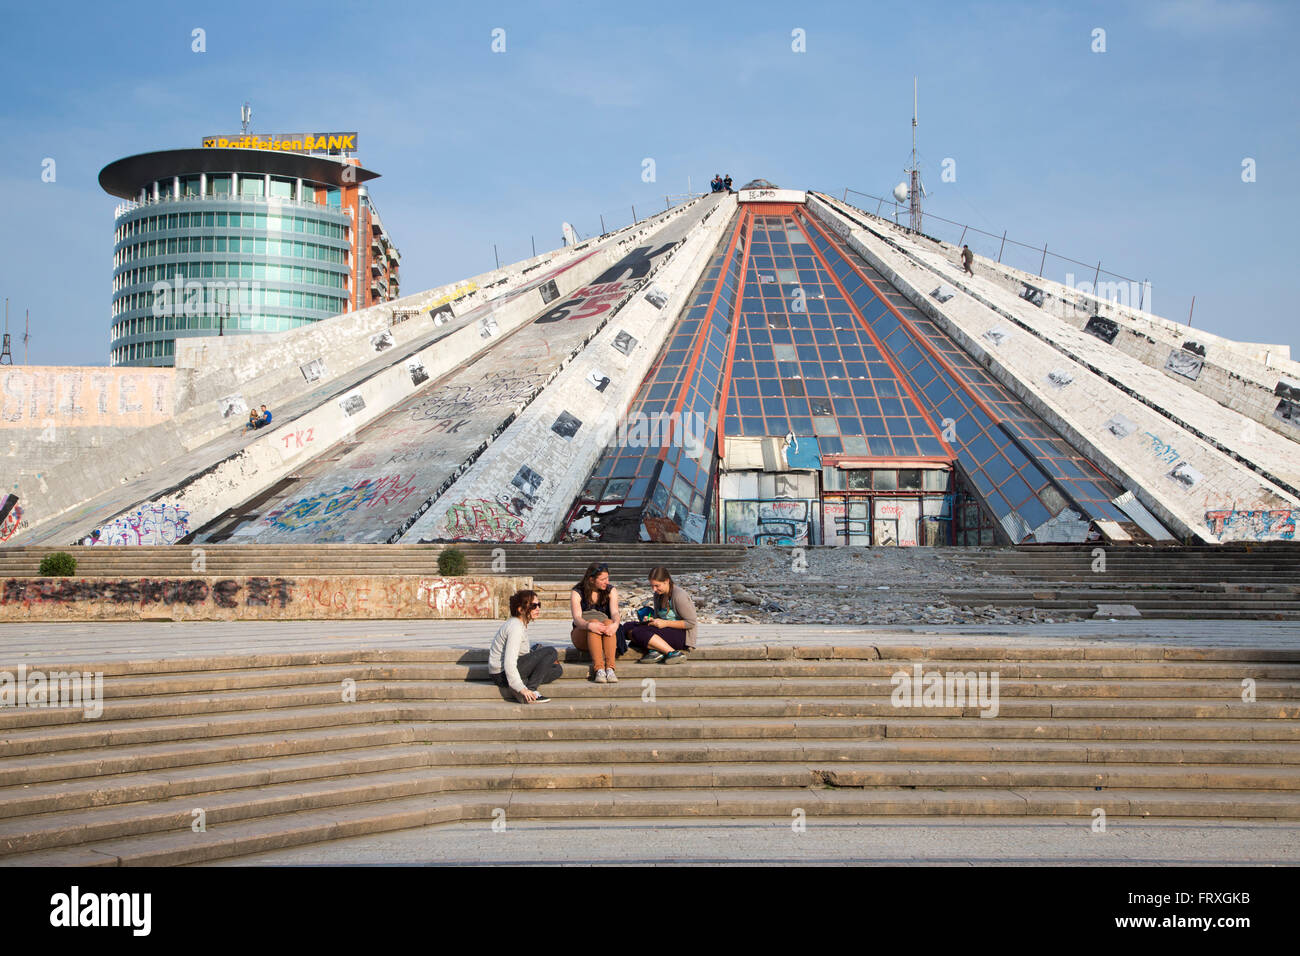 People sitting on the steps of the graffiti-covered The Pyramid International Center of Culture with glass high - Stock Image